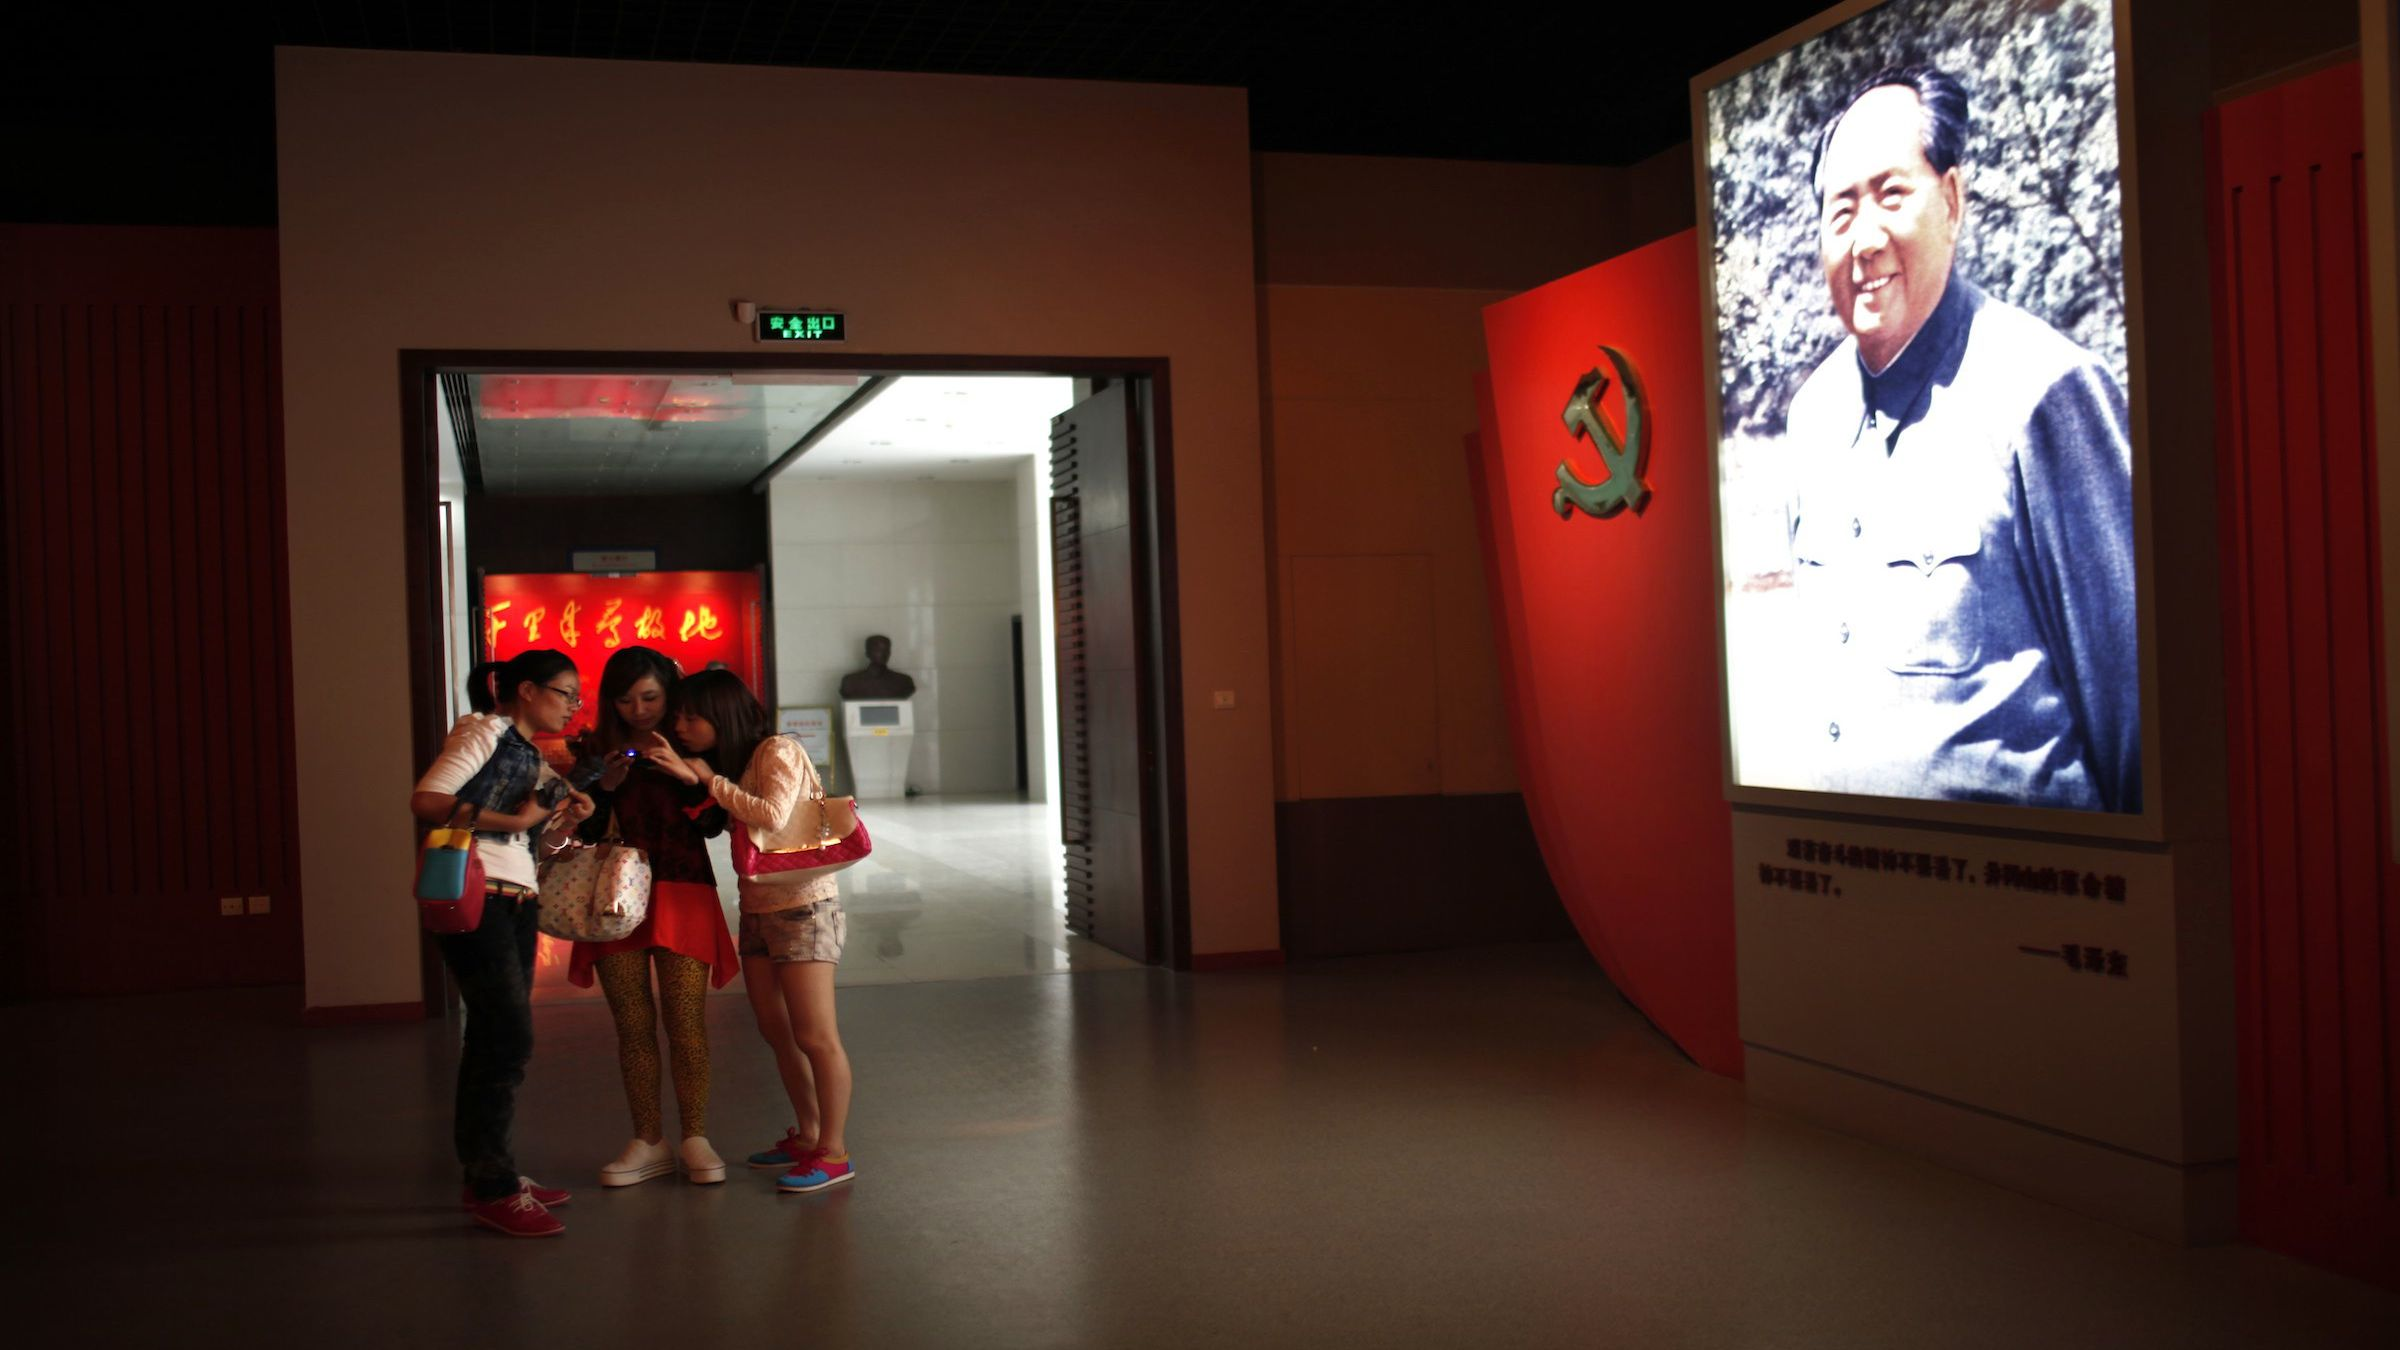 Teenagers looks at the screen of mobile phone as they stand next to a portrait of former Chinese leader Mao Zedong at the Revolution museum in Jinggangshan, Jiangxi province, September 20, 2012. China has yet to announce the start date for the 18th Communist Party Congress, China's biggest political meeting in 10 years, which will see the transfer of power from President Hu Jintao and Premier Wen Jiabao to a new generation. REUTERS/Carlos Barria  (CHINA - Tags: POLITICS) - RTR3873I